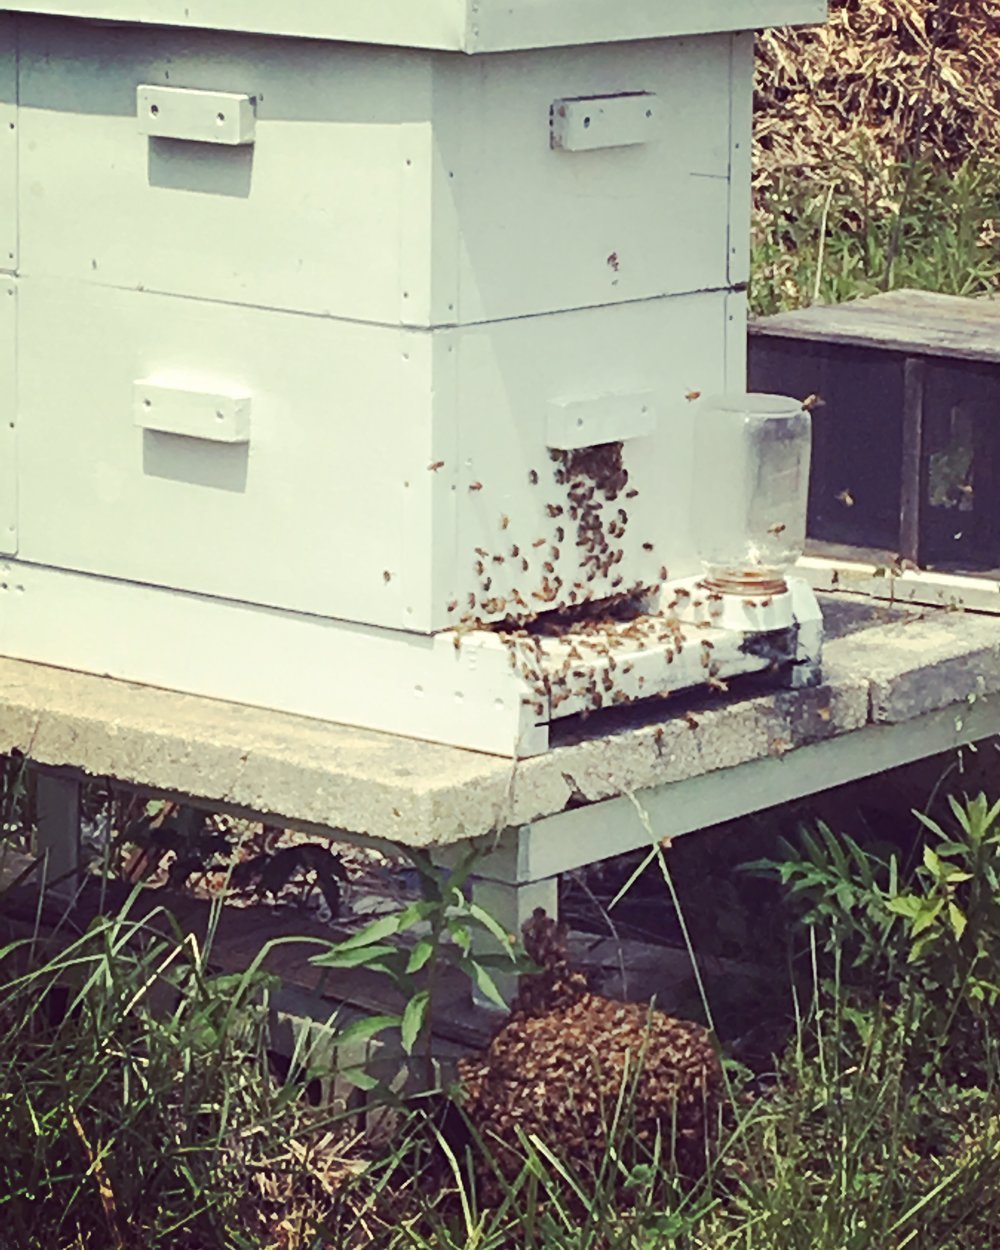 The second, smaller swarm formed under the original hive.